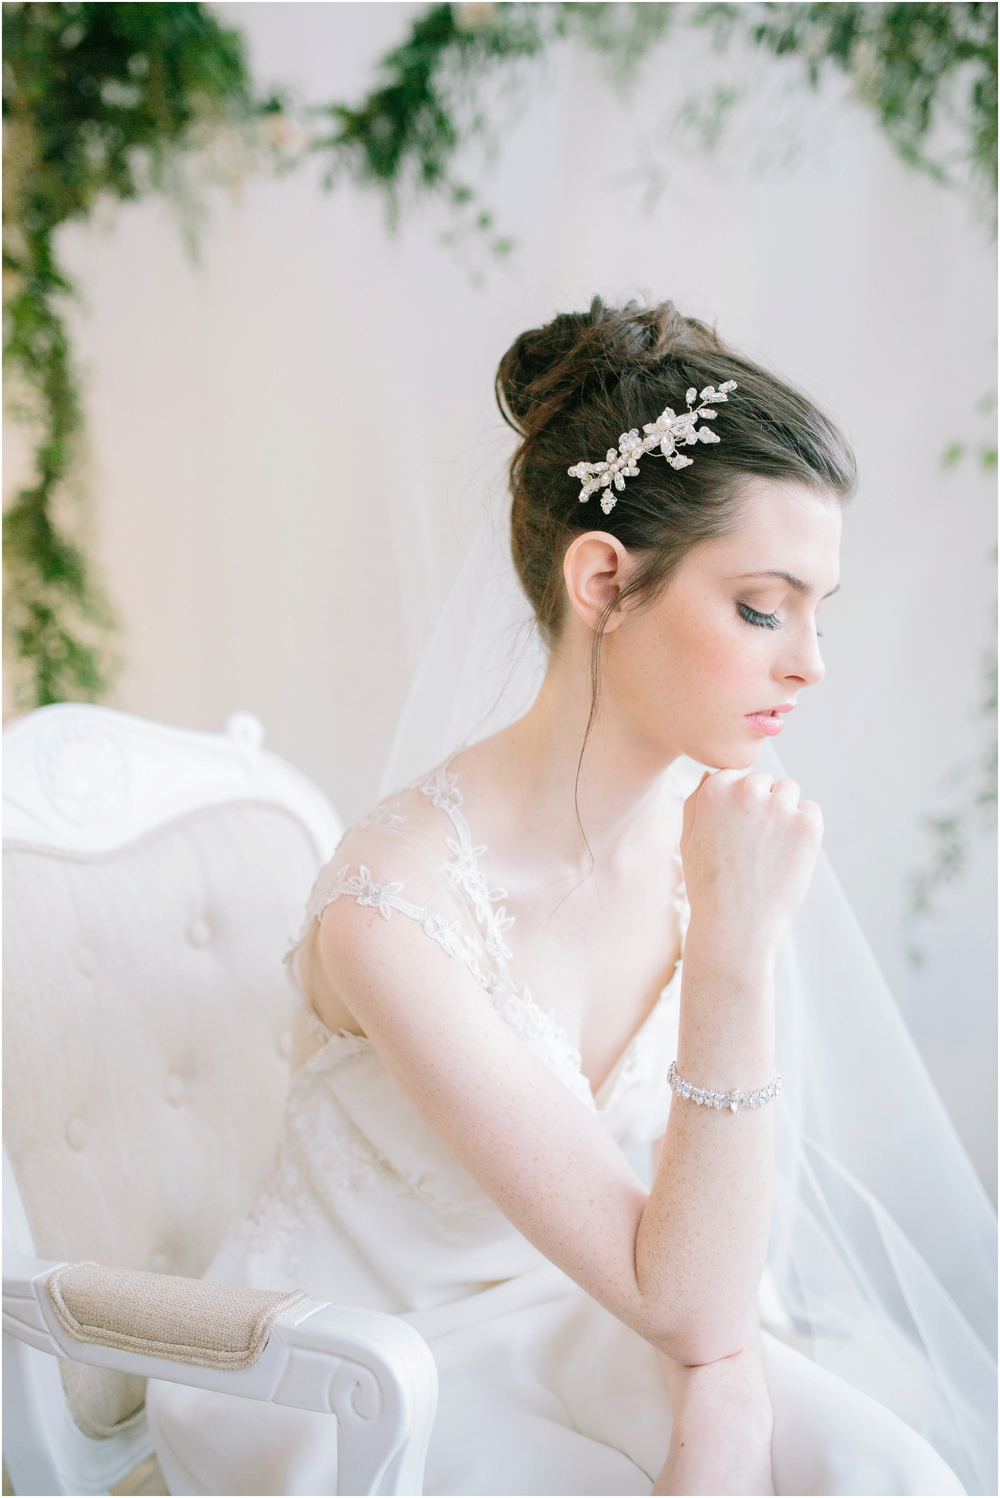 suzanne_li_photography_bridal_accessories_susan_dick_0014.jpg